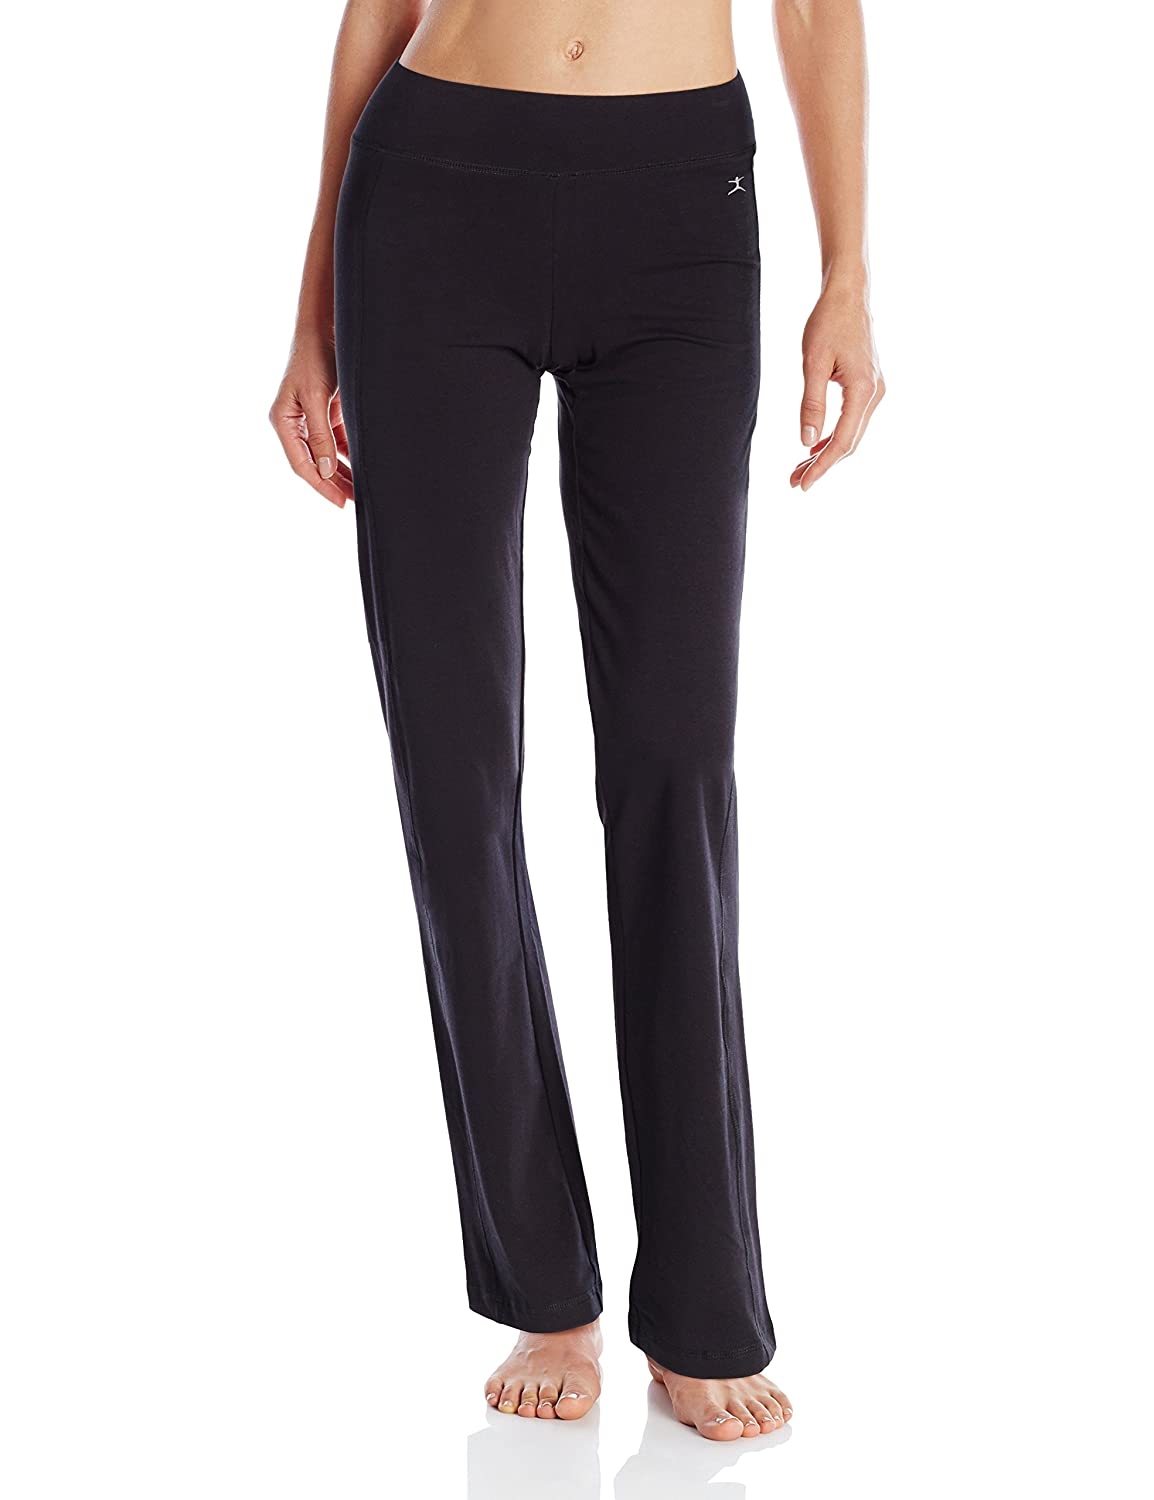 b8636ff56d Top 20 Best Yoga Pants for Women 20190-2020 on Flipboard by PedraHass